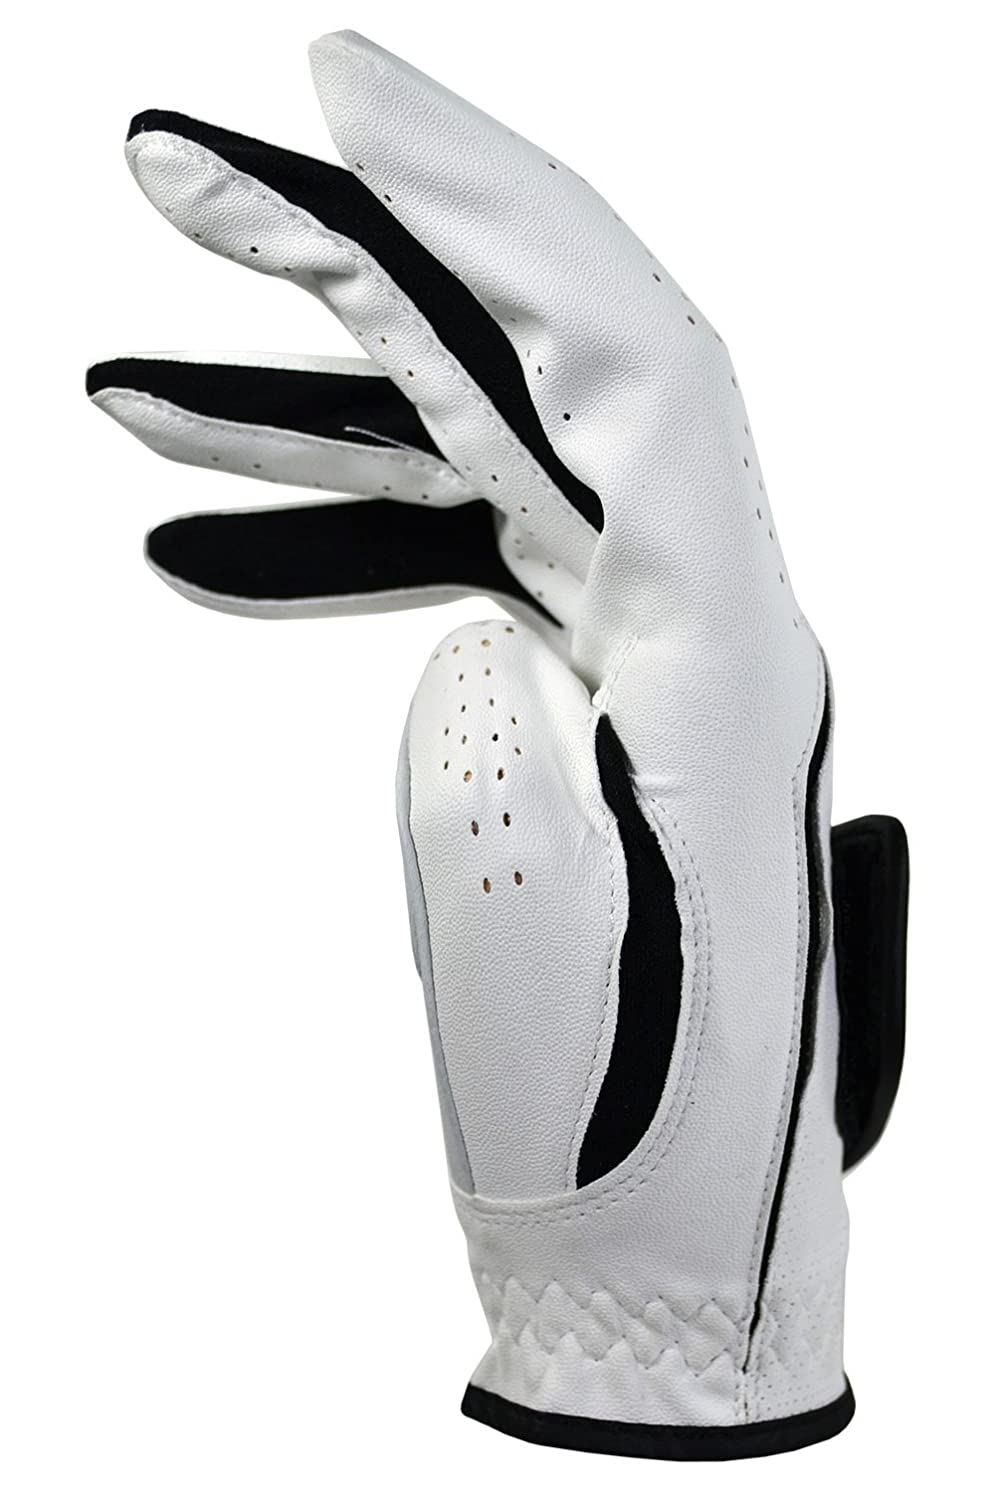 Mens leather gloves tj hughes - Nike Dura Feel Vi Mens Golf Glove White Small Amazon Co Uk Sports Outdoors